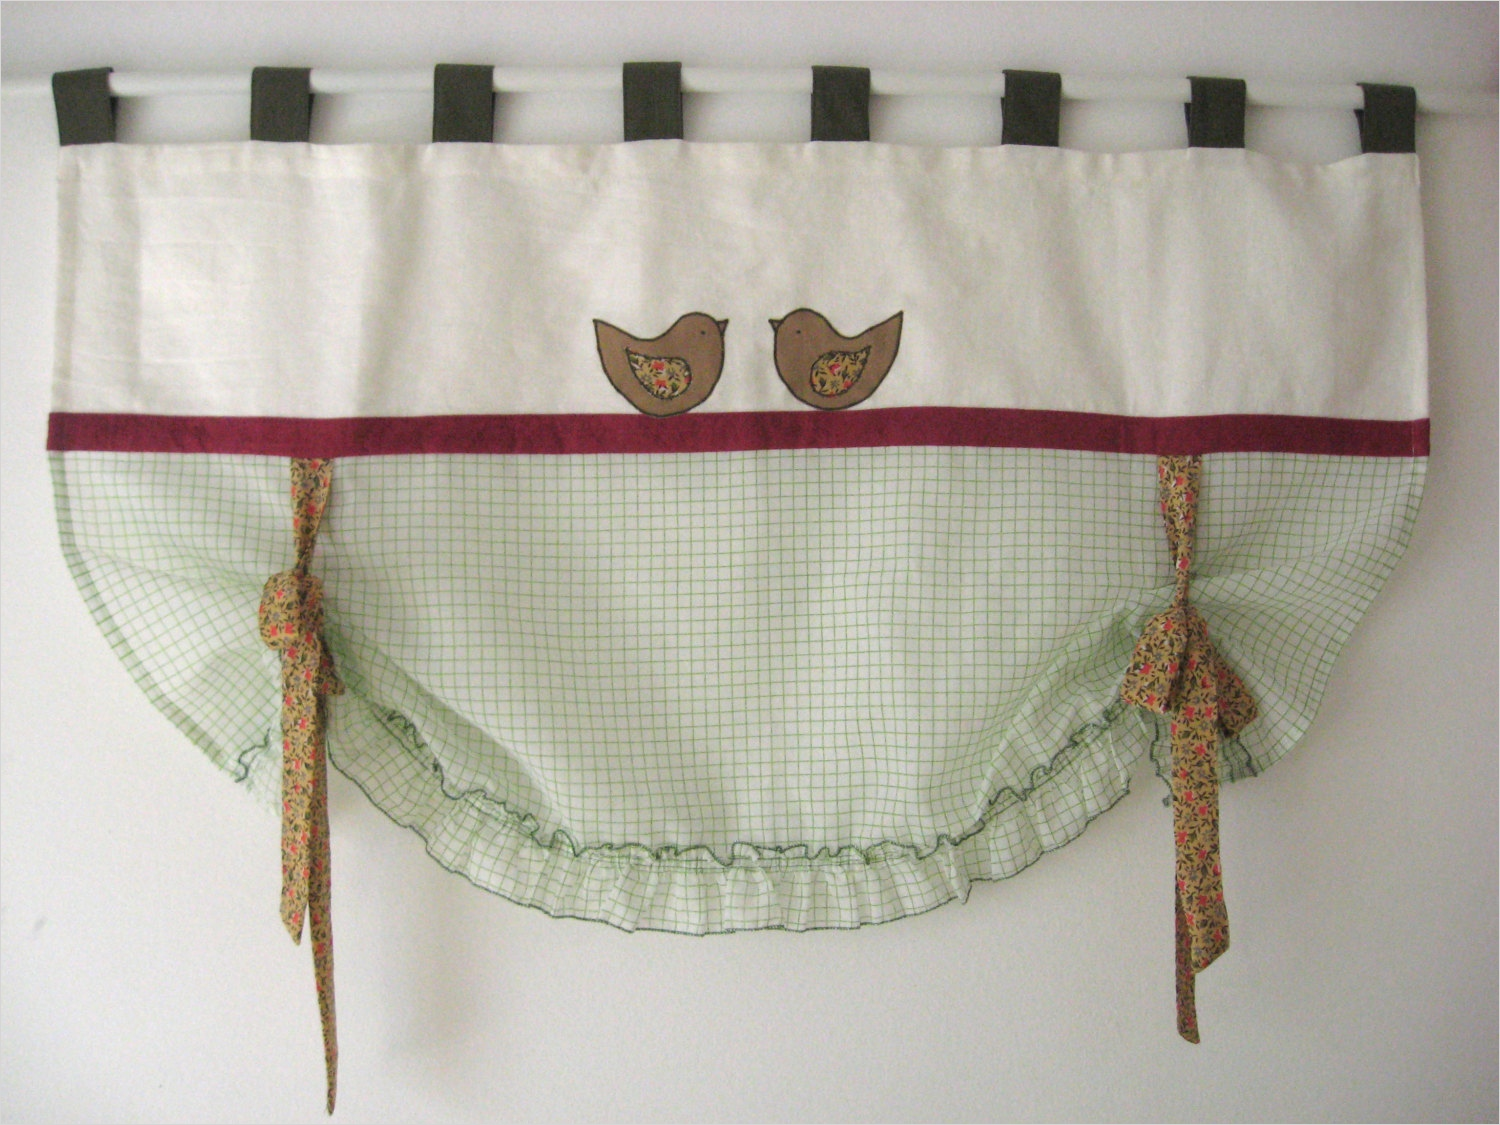 41 Perfect Farmhouse Country Kitchen Curtain Valances 18 White Linen Farmhouse Tie Up Valance Bird Window Treatment 1